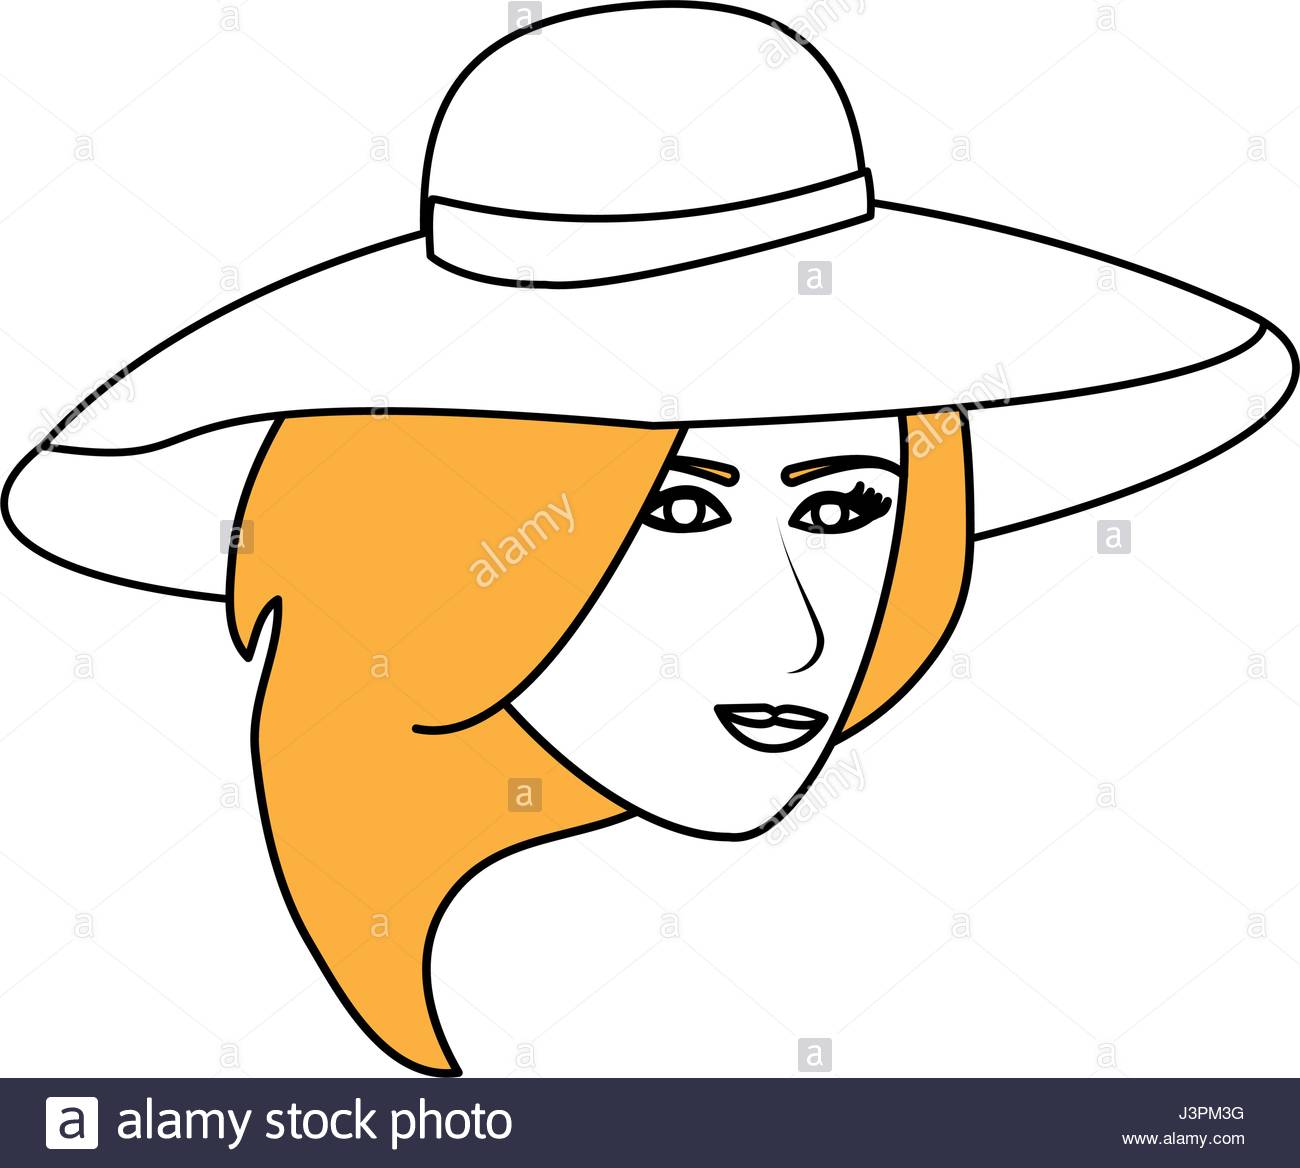 1300x1168 Color Silhouette Image Cartoon Front Face Woman With Beach Hat